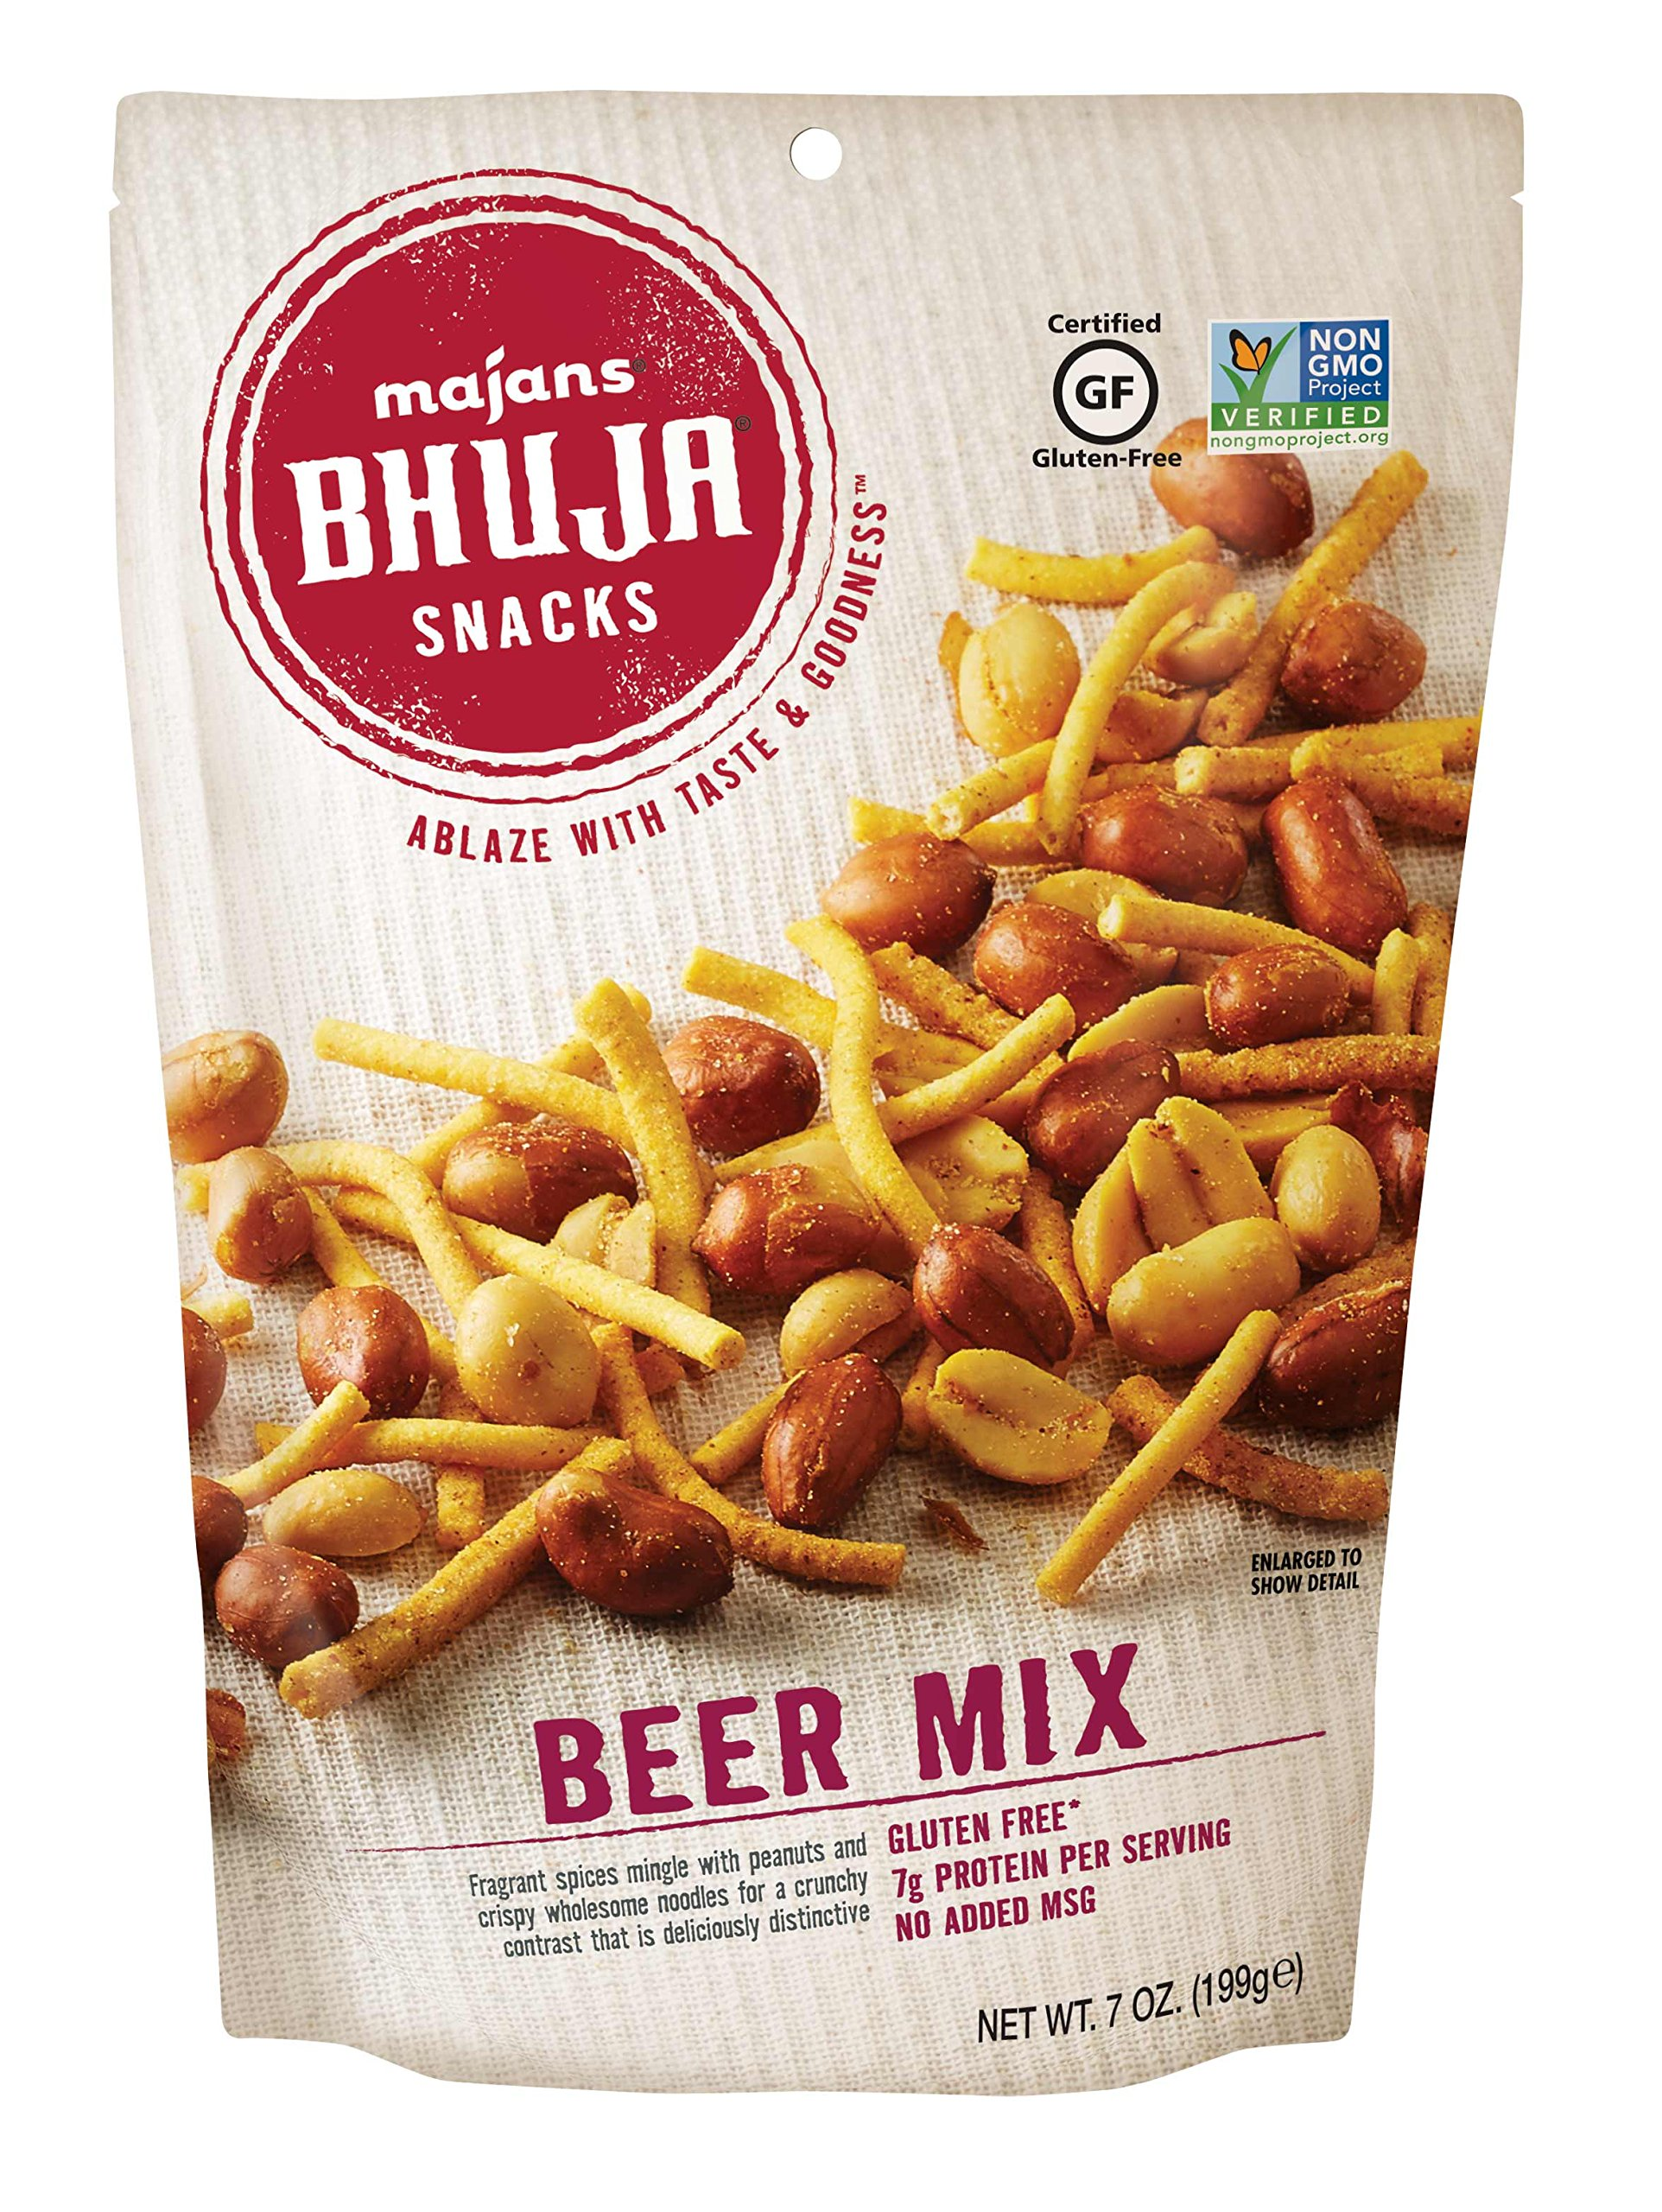 Majans Bhuja Gluten Free Snack Mix, Non-GMO | No Preservatives | Vegetarian Friendly | No Artificial Colors or Flavors, Beer Mix, 7 Ounce (Pack of 6) by BHUJA